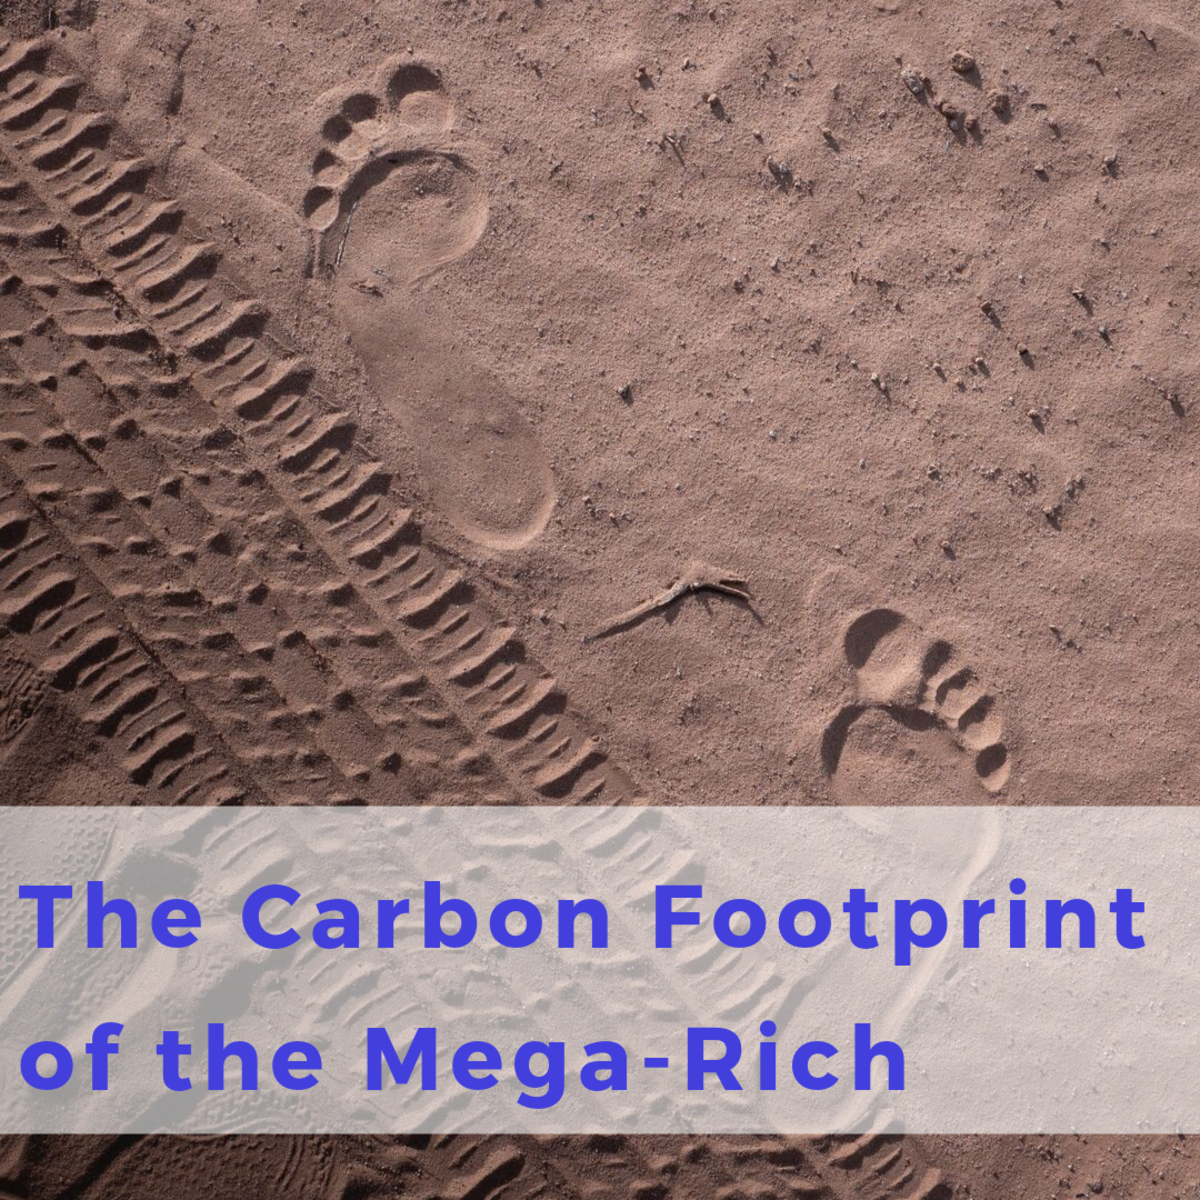 What is the carbon footprint of the world's wealthiest one percent?